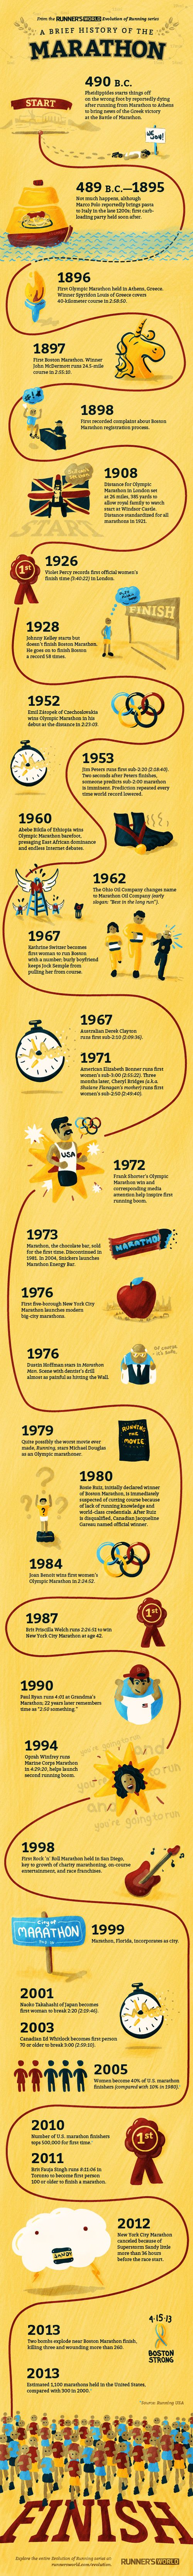 A Brief History of the Marathon  http://www.runnersworld.com/races/a-brief-history-of-the-marathon